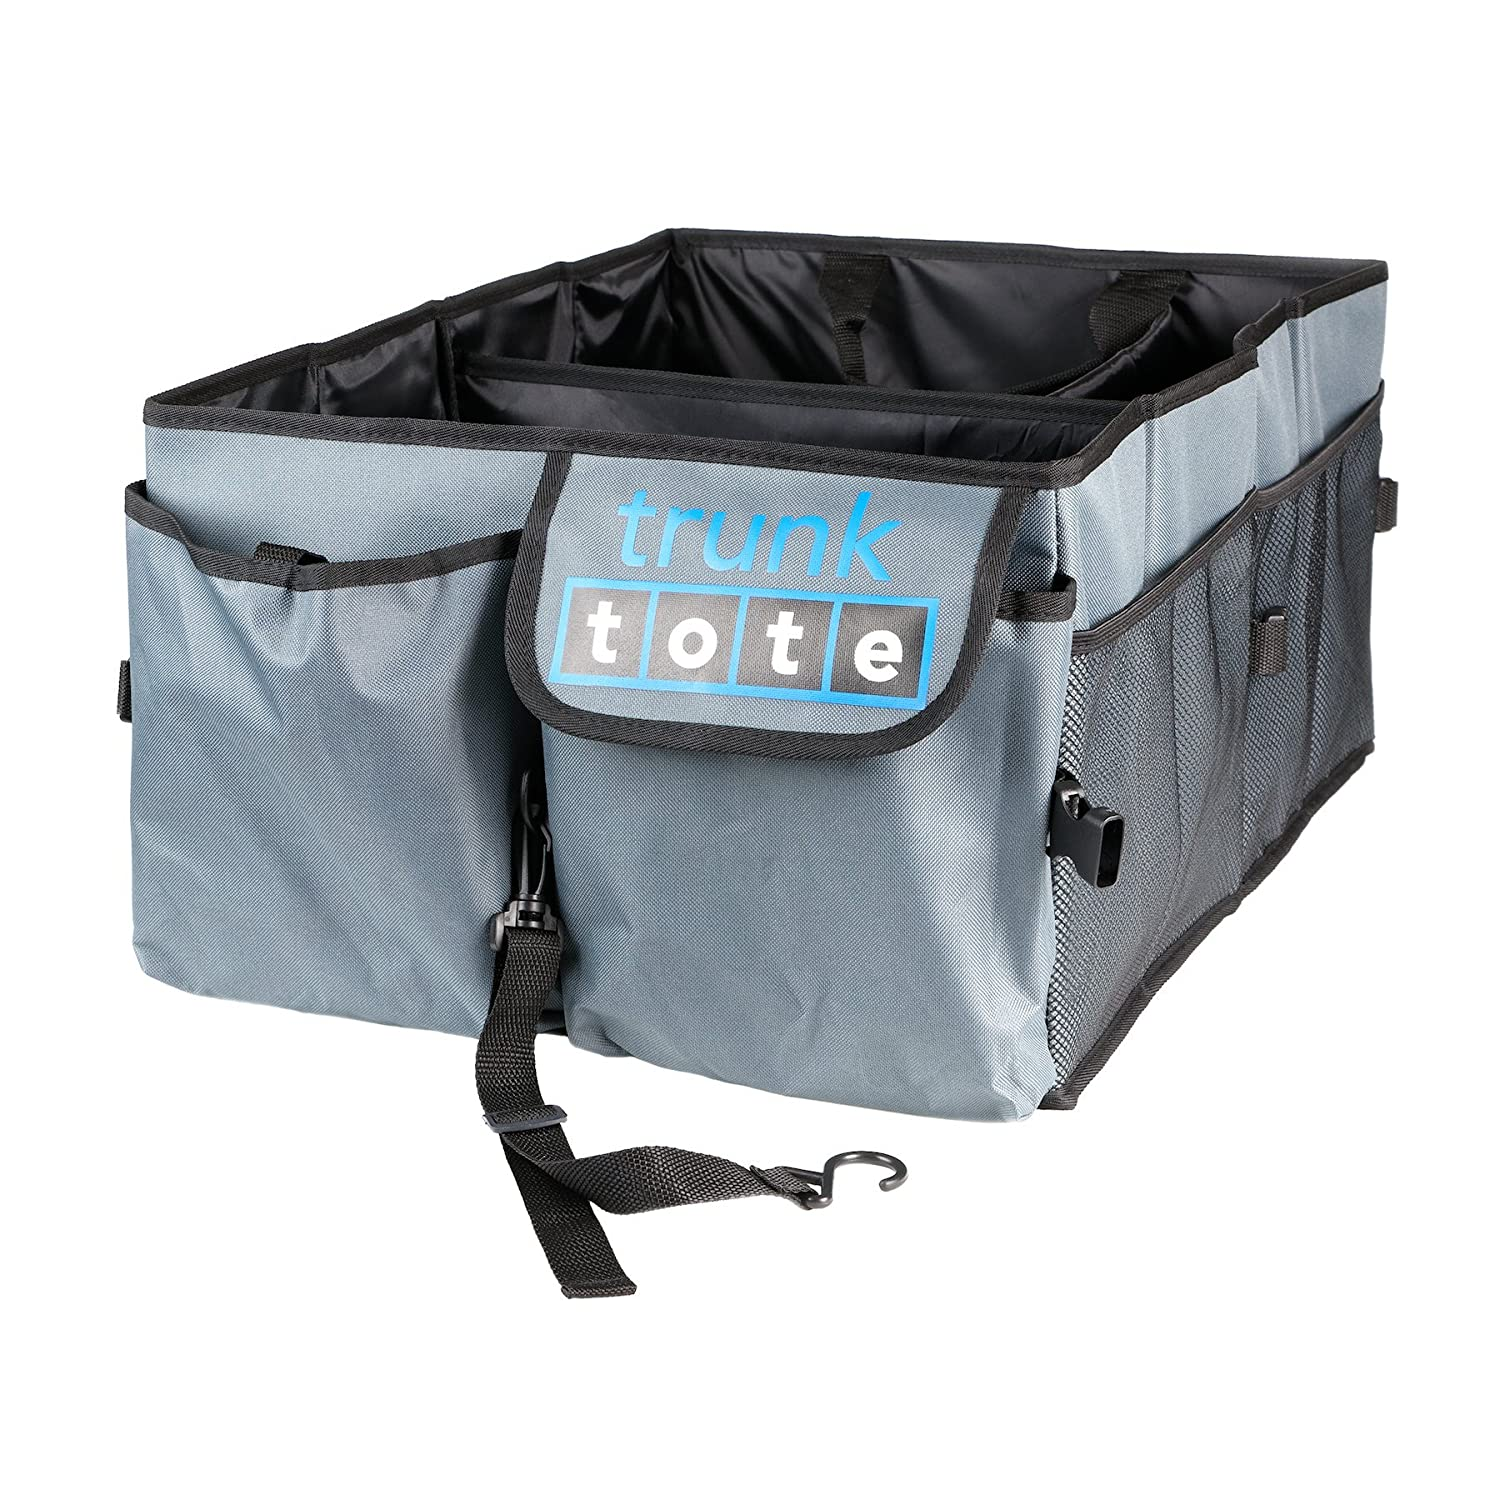 Trunk Tote Car Trunk Organizer - Storage Trunk Organizer Fits All Makes and Models